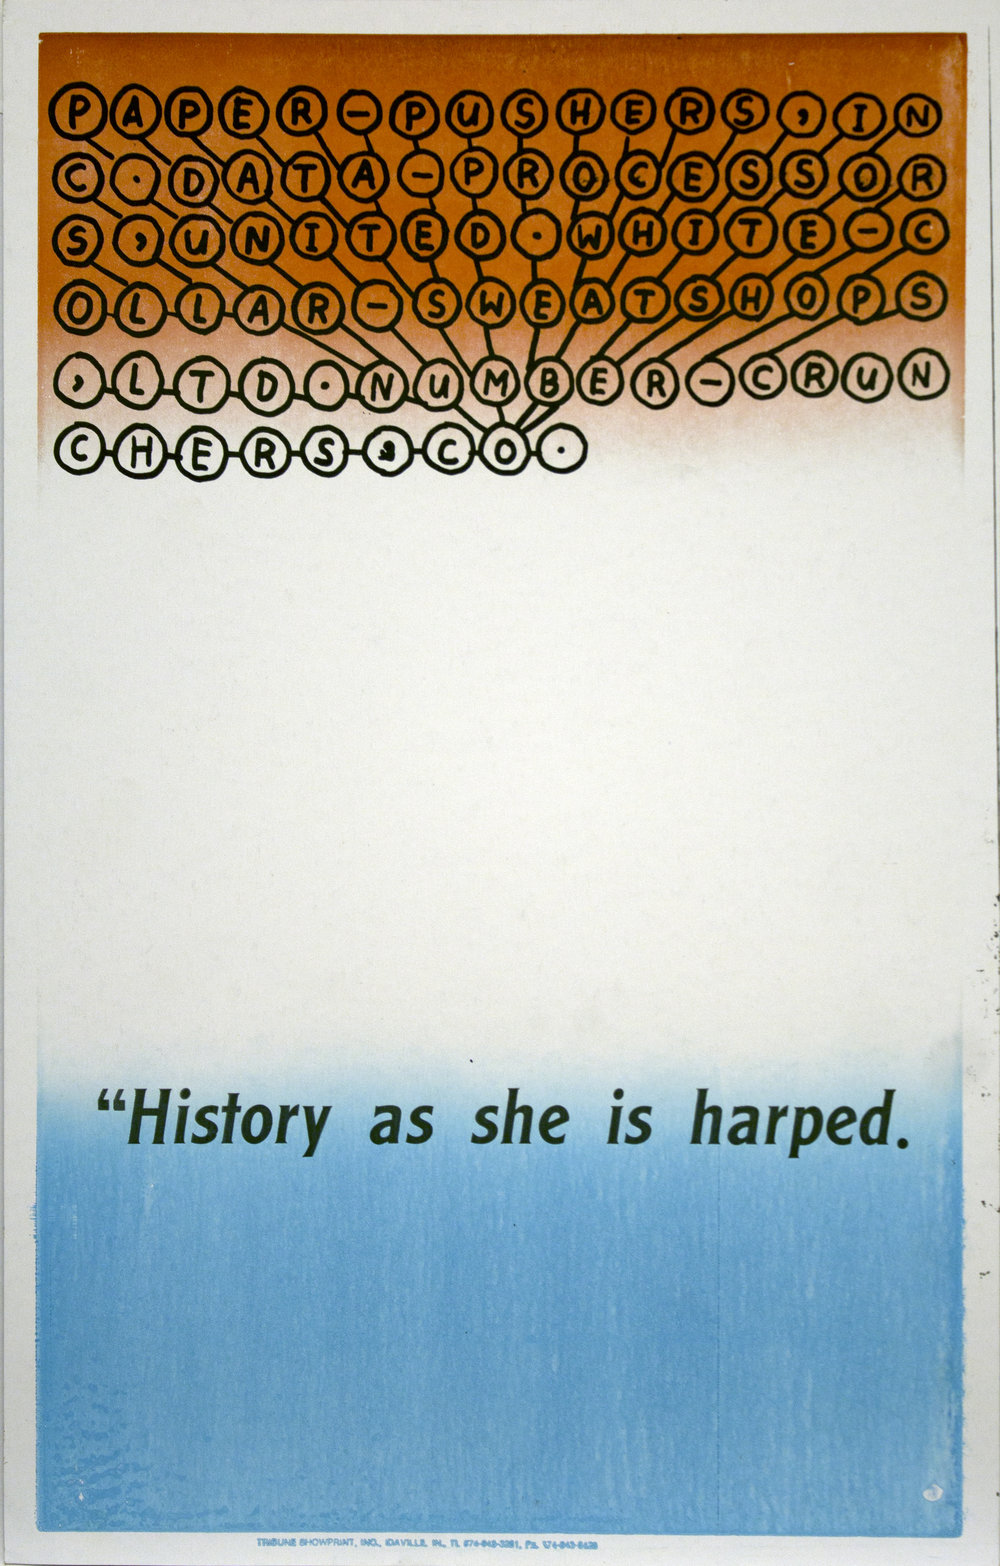 "Christopher Michlig and Jan Tumlir,  The Future of Writing 1: Keyboard (""History as she is harped.) , 2017. Silkscreen and letterpress on poster board, 14 x 22 inches"